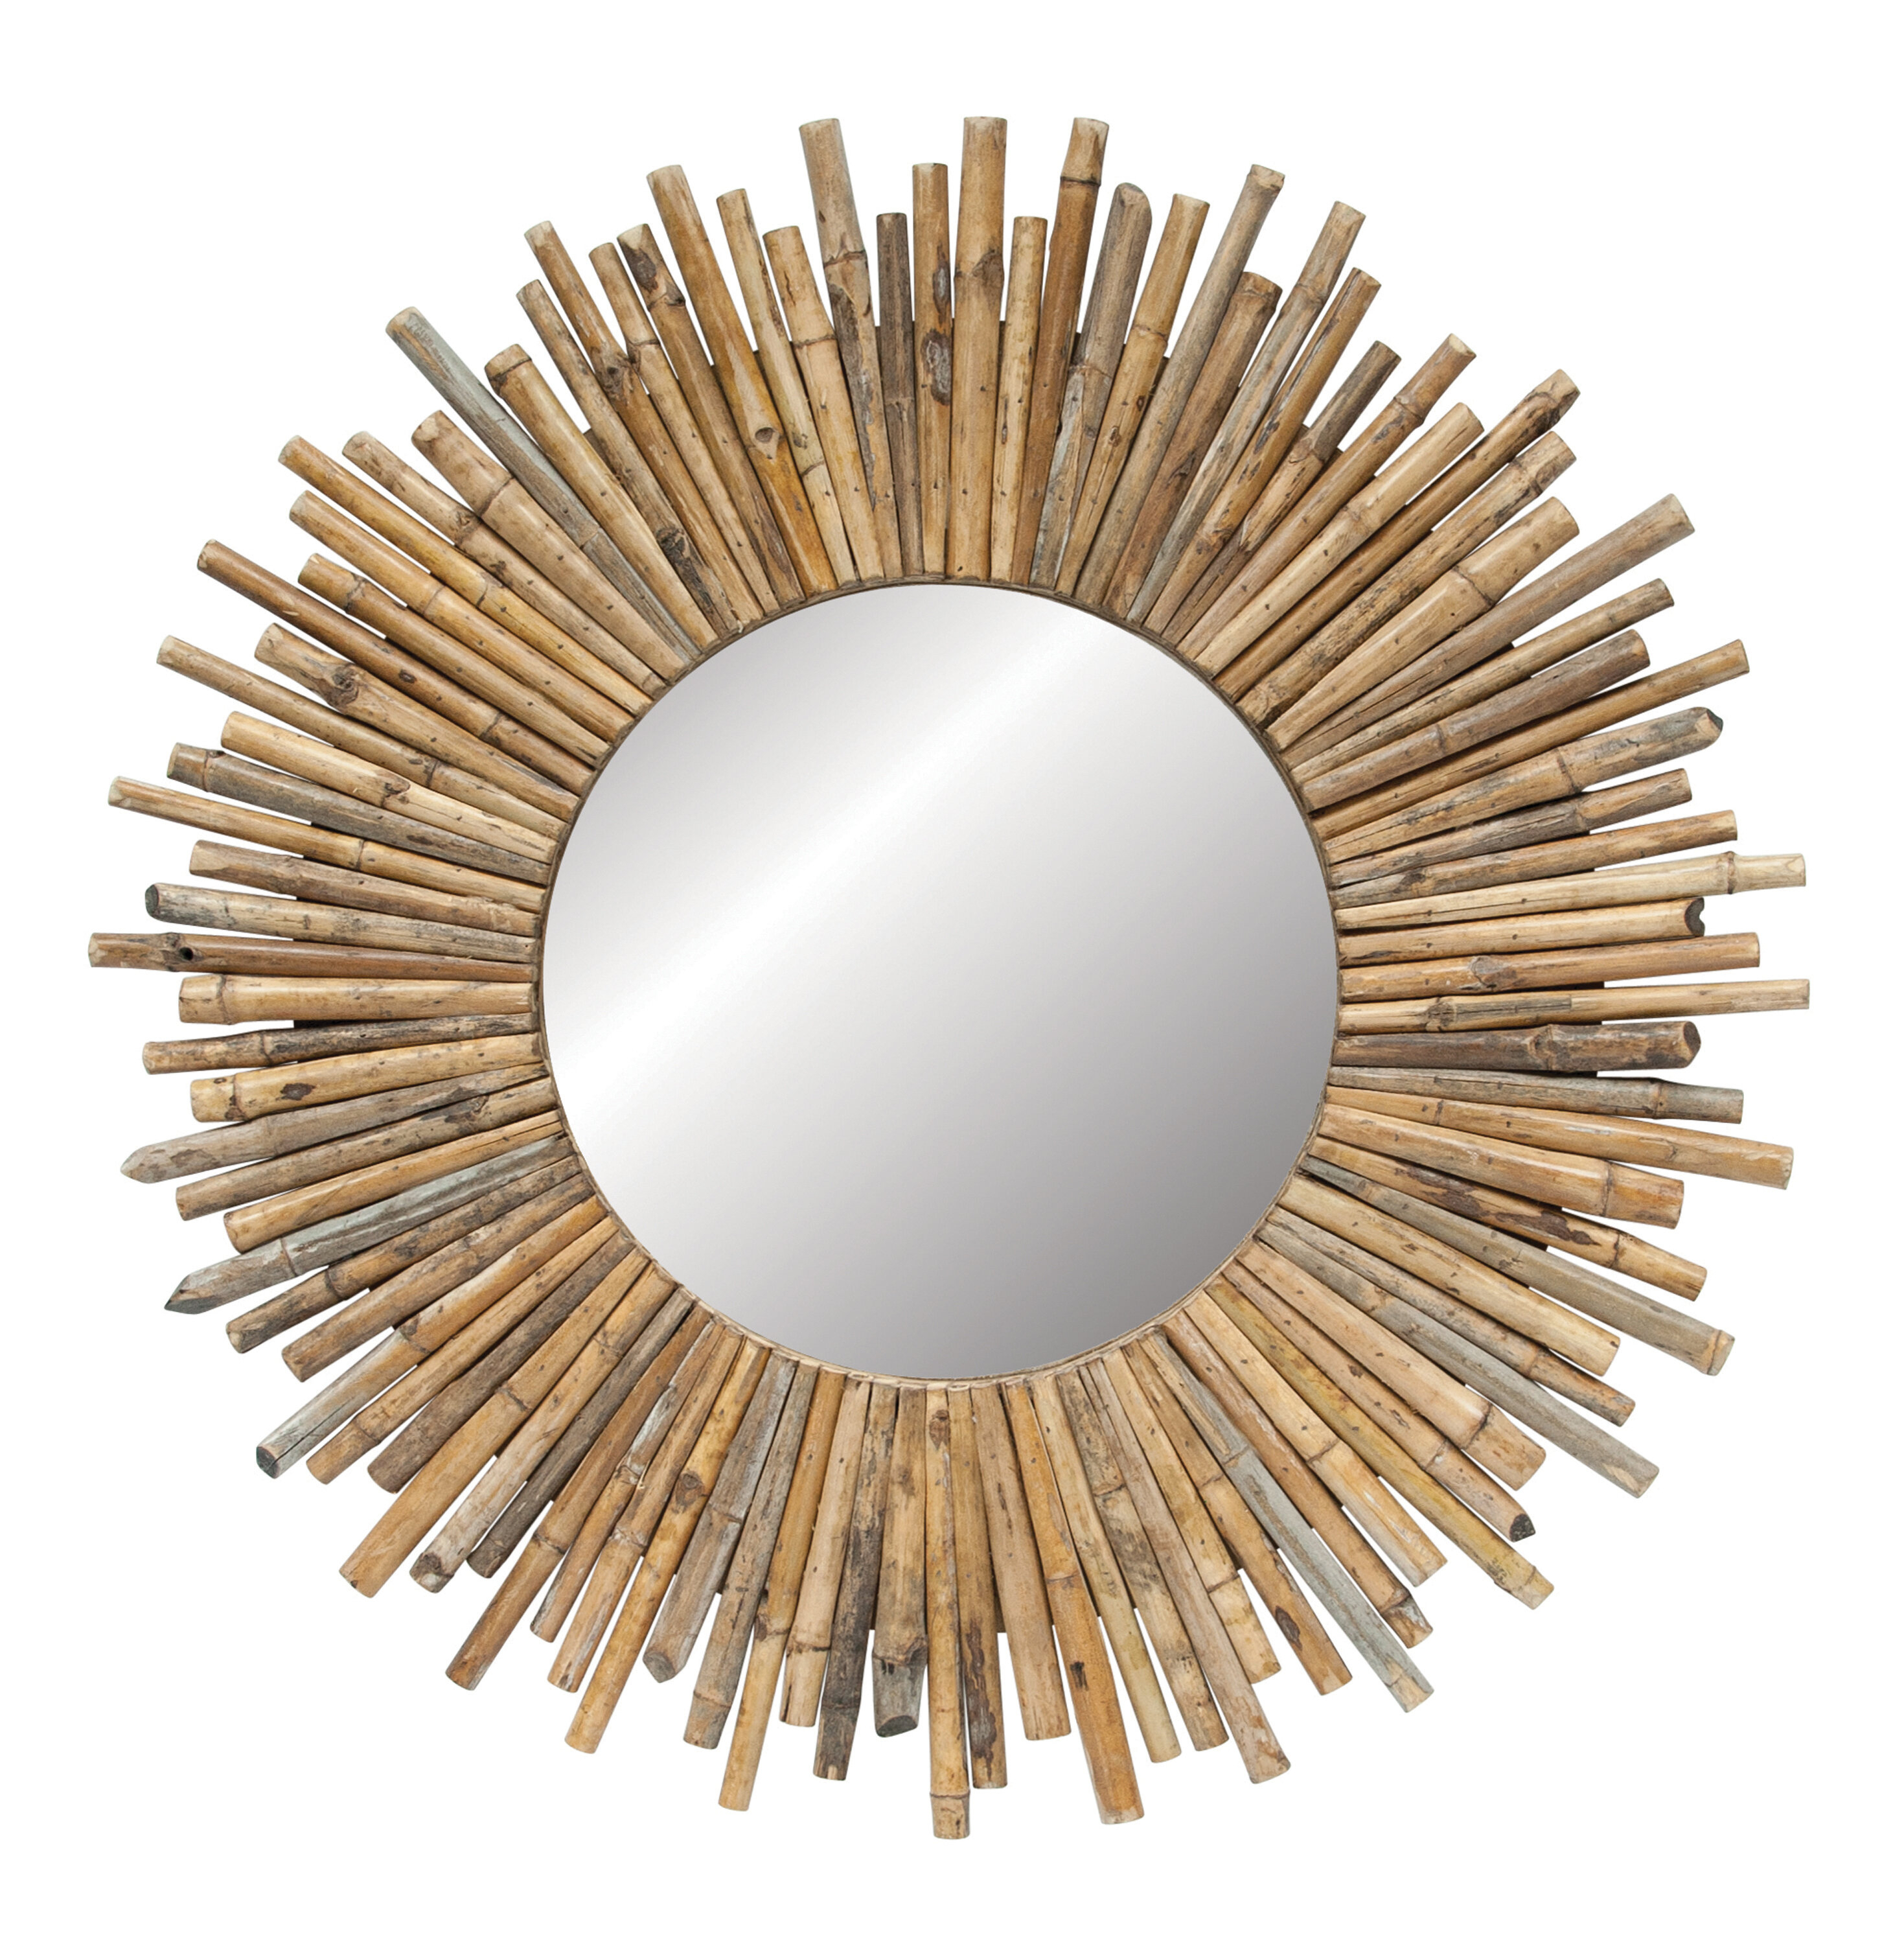 Madilynn Eclectic Accent Mirror Intended For Round Eclectic Accent Mirrors (View 18 of 30)